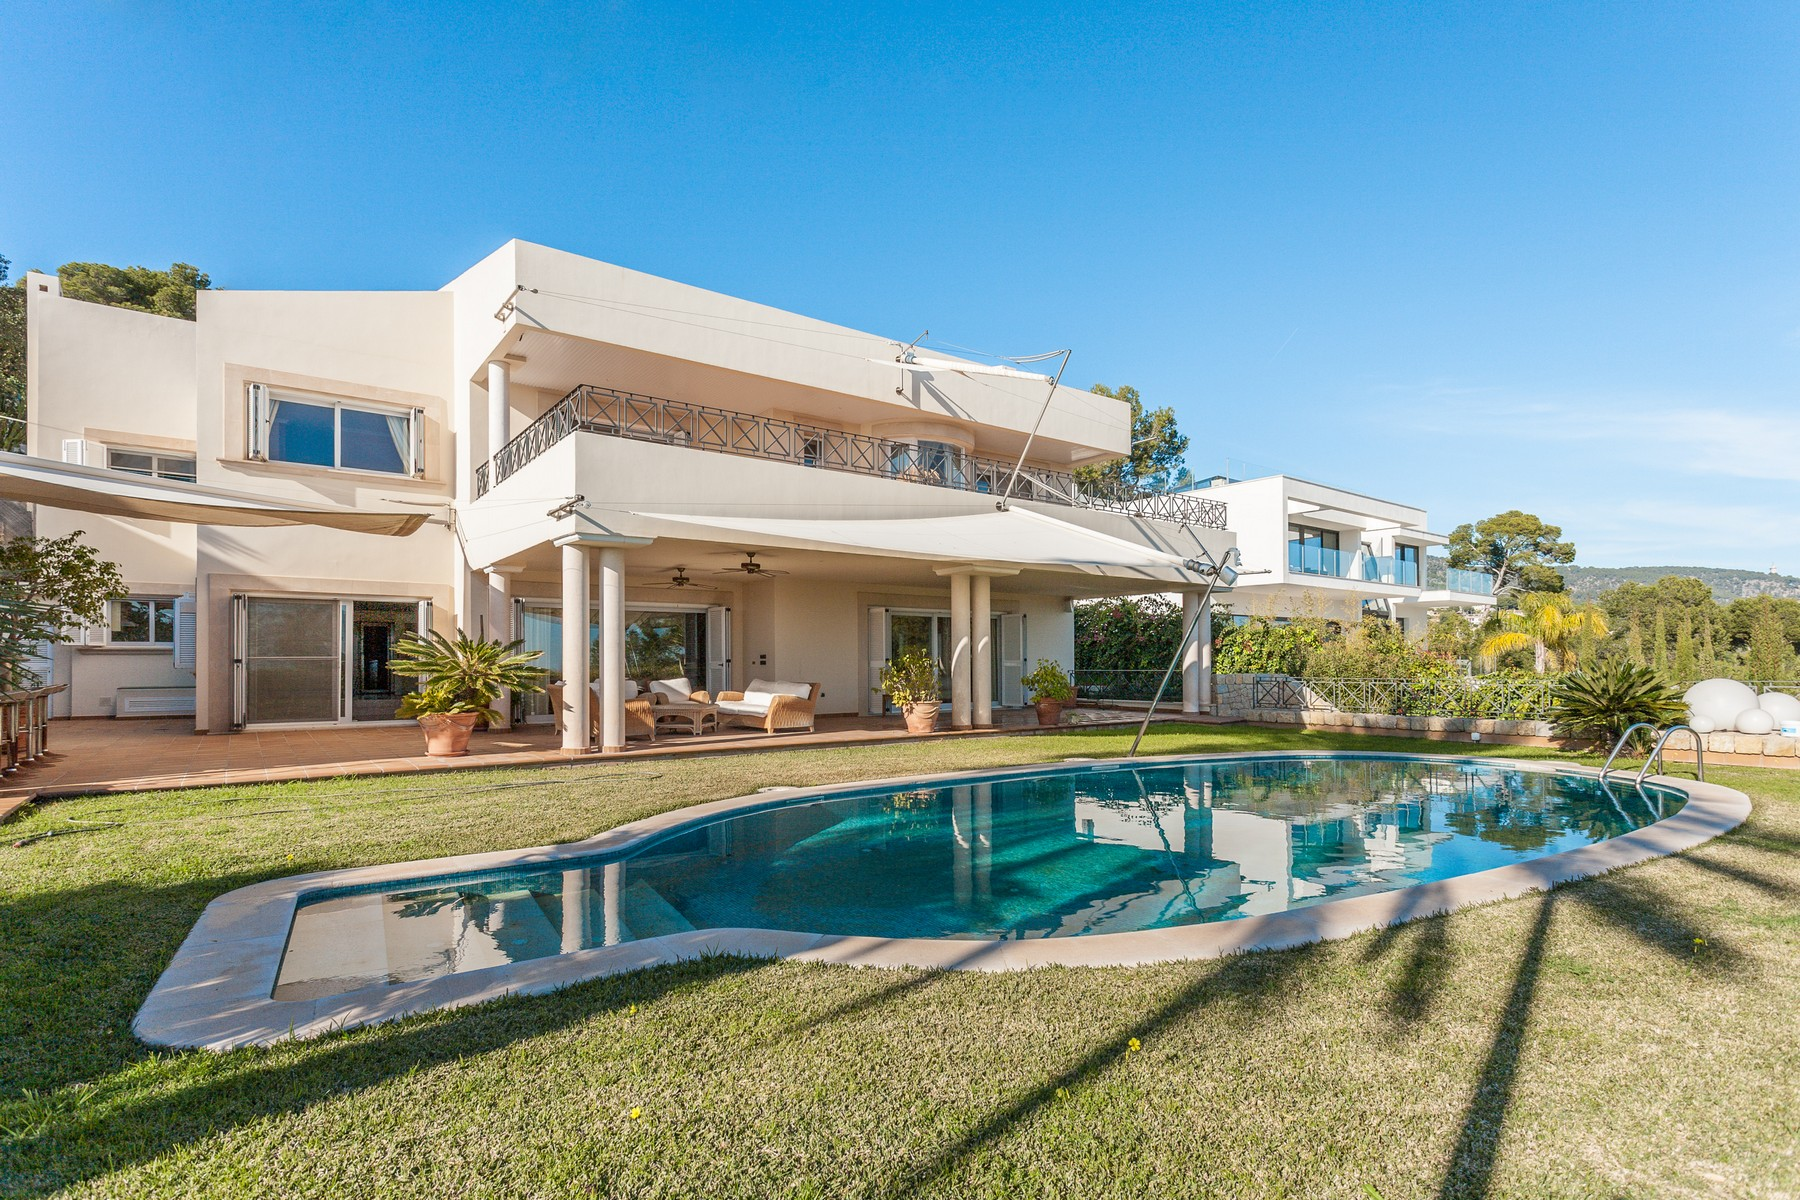 Villa per Vendita alle ore Villa in first class location in Bendinat Bendinat, Maiorca 07181 Spagna